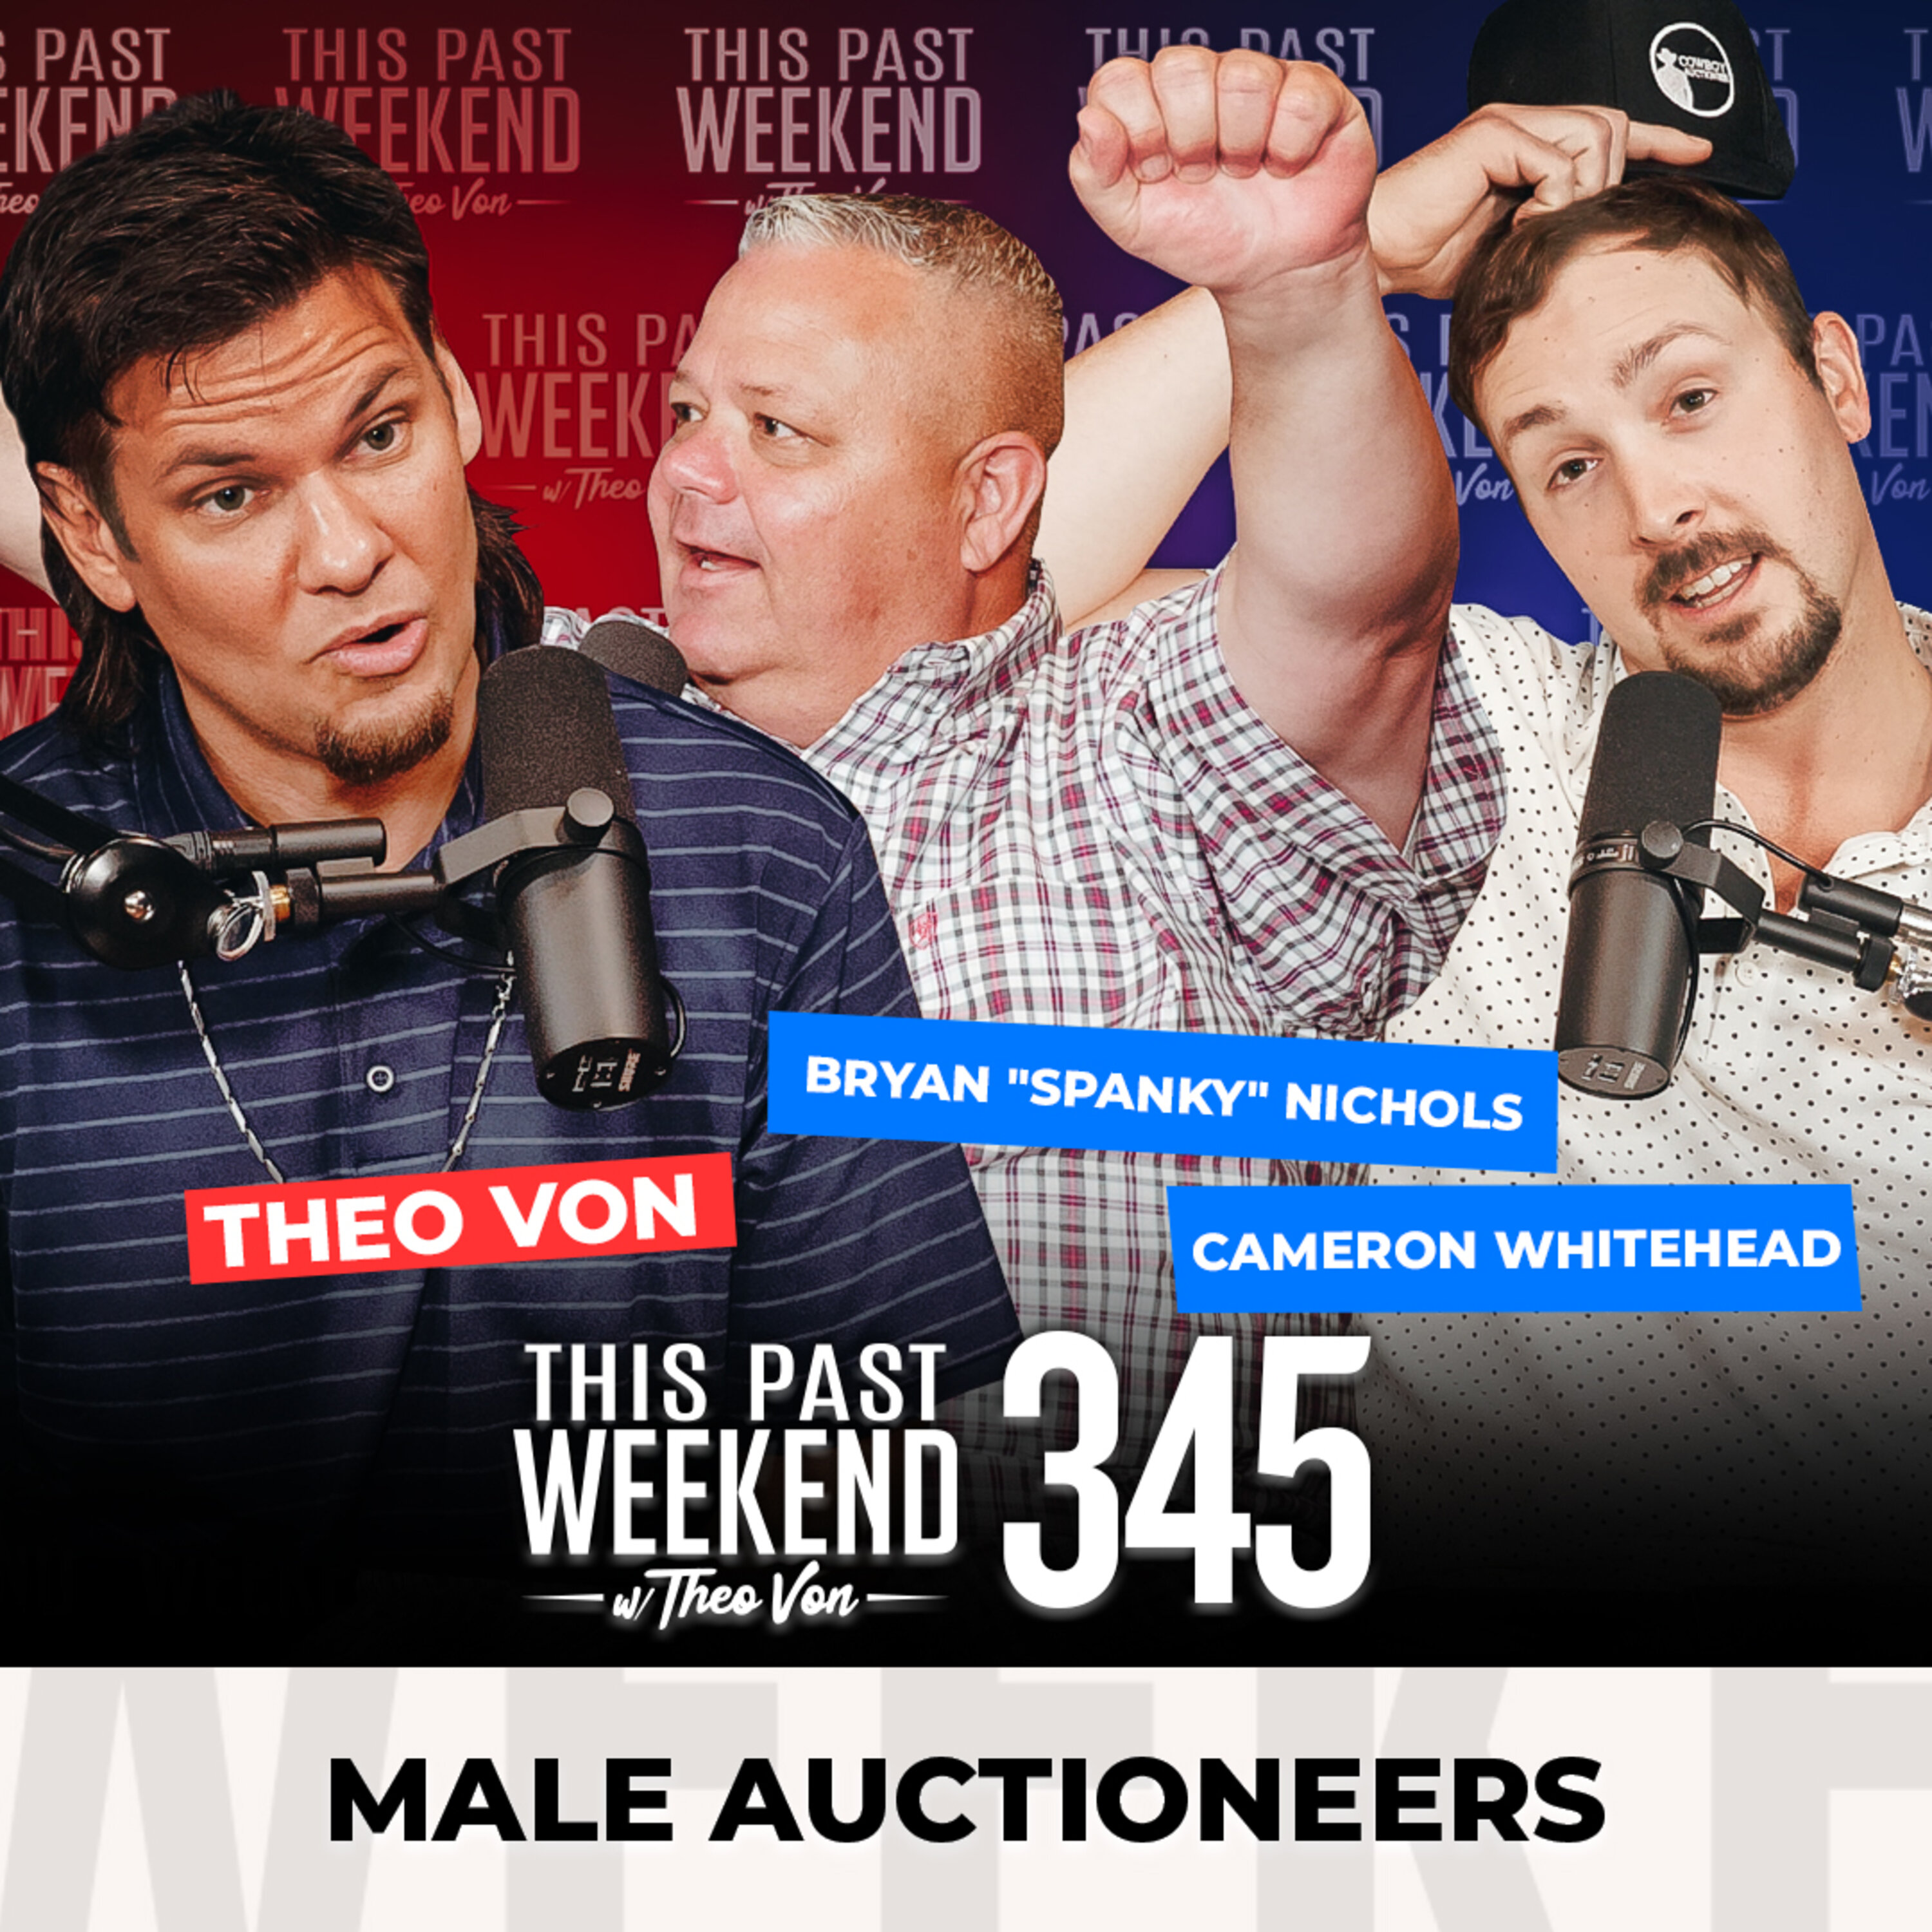 Male Auctioneers